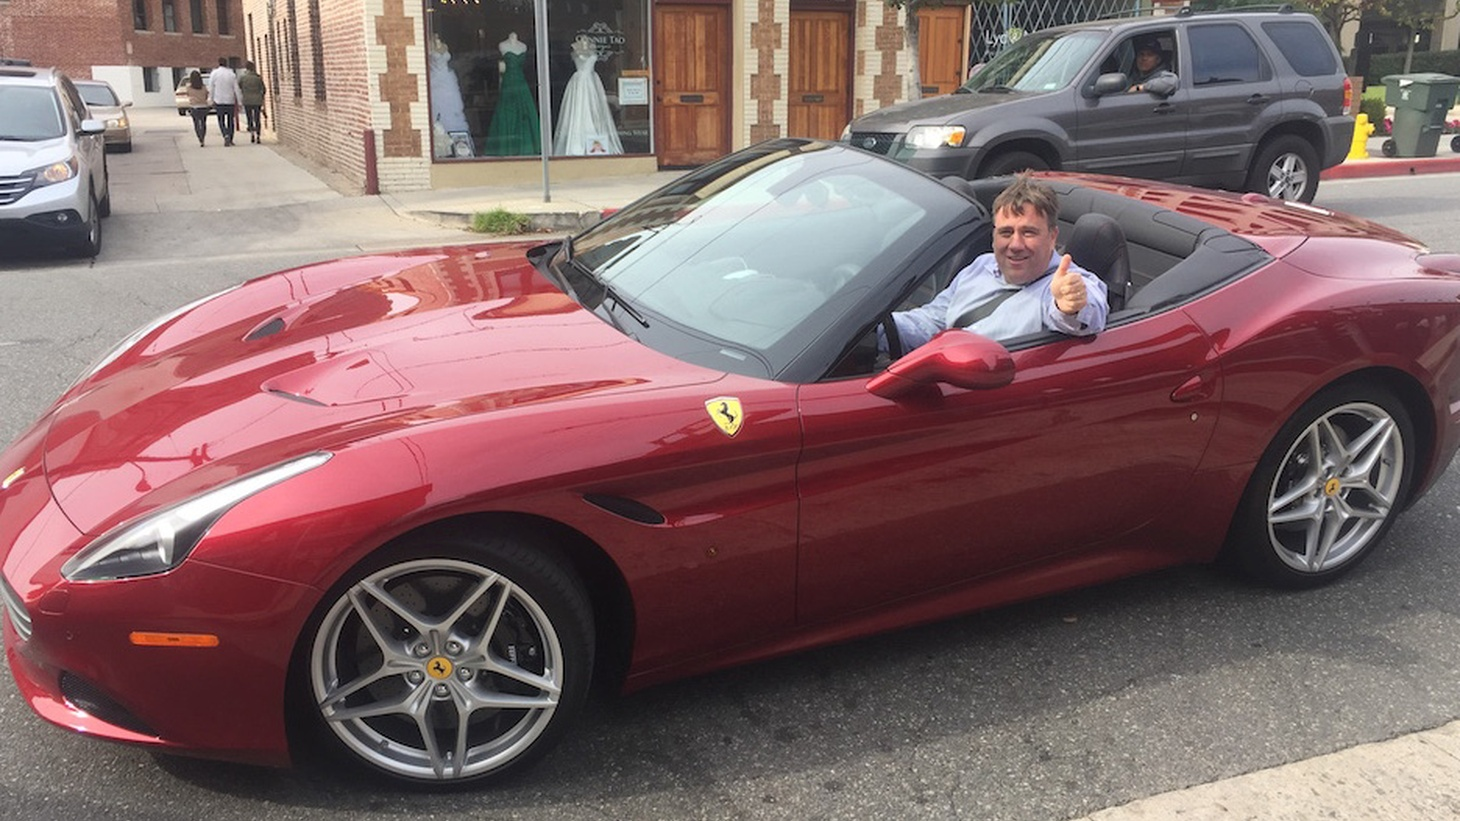 What does a $240,000 Ferrari California tell us about life in this state? Joe Mathews says it's a symbol that though the good life is just a freeway lane away, it's far out of reach for most of us.